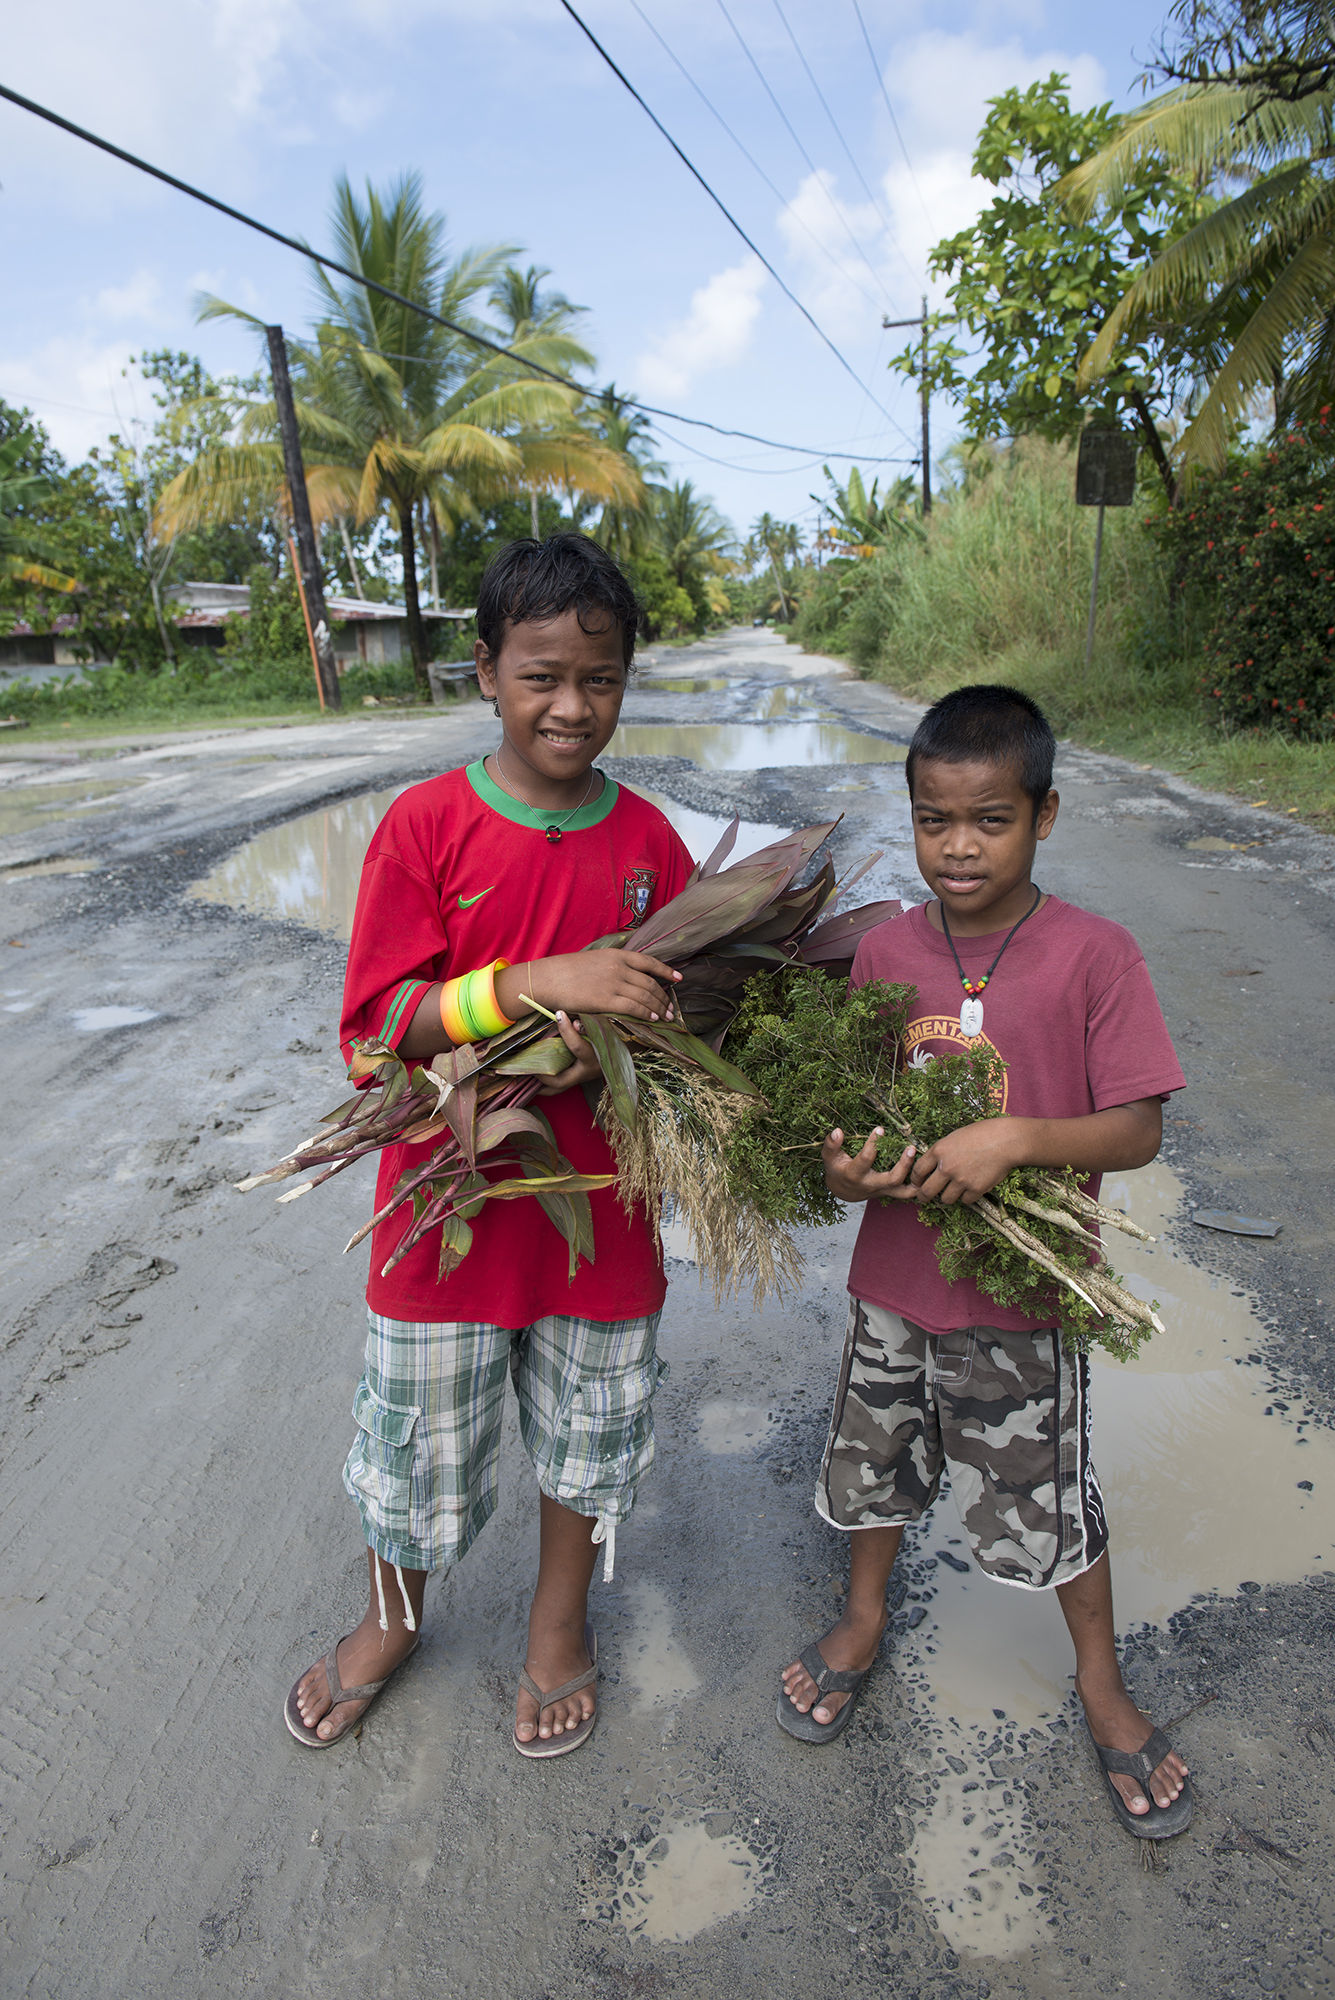 <p>Children play without care on Weno's main road, calling to passersby from America.</p>